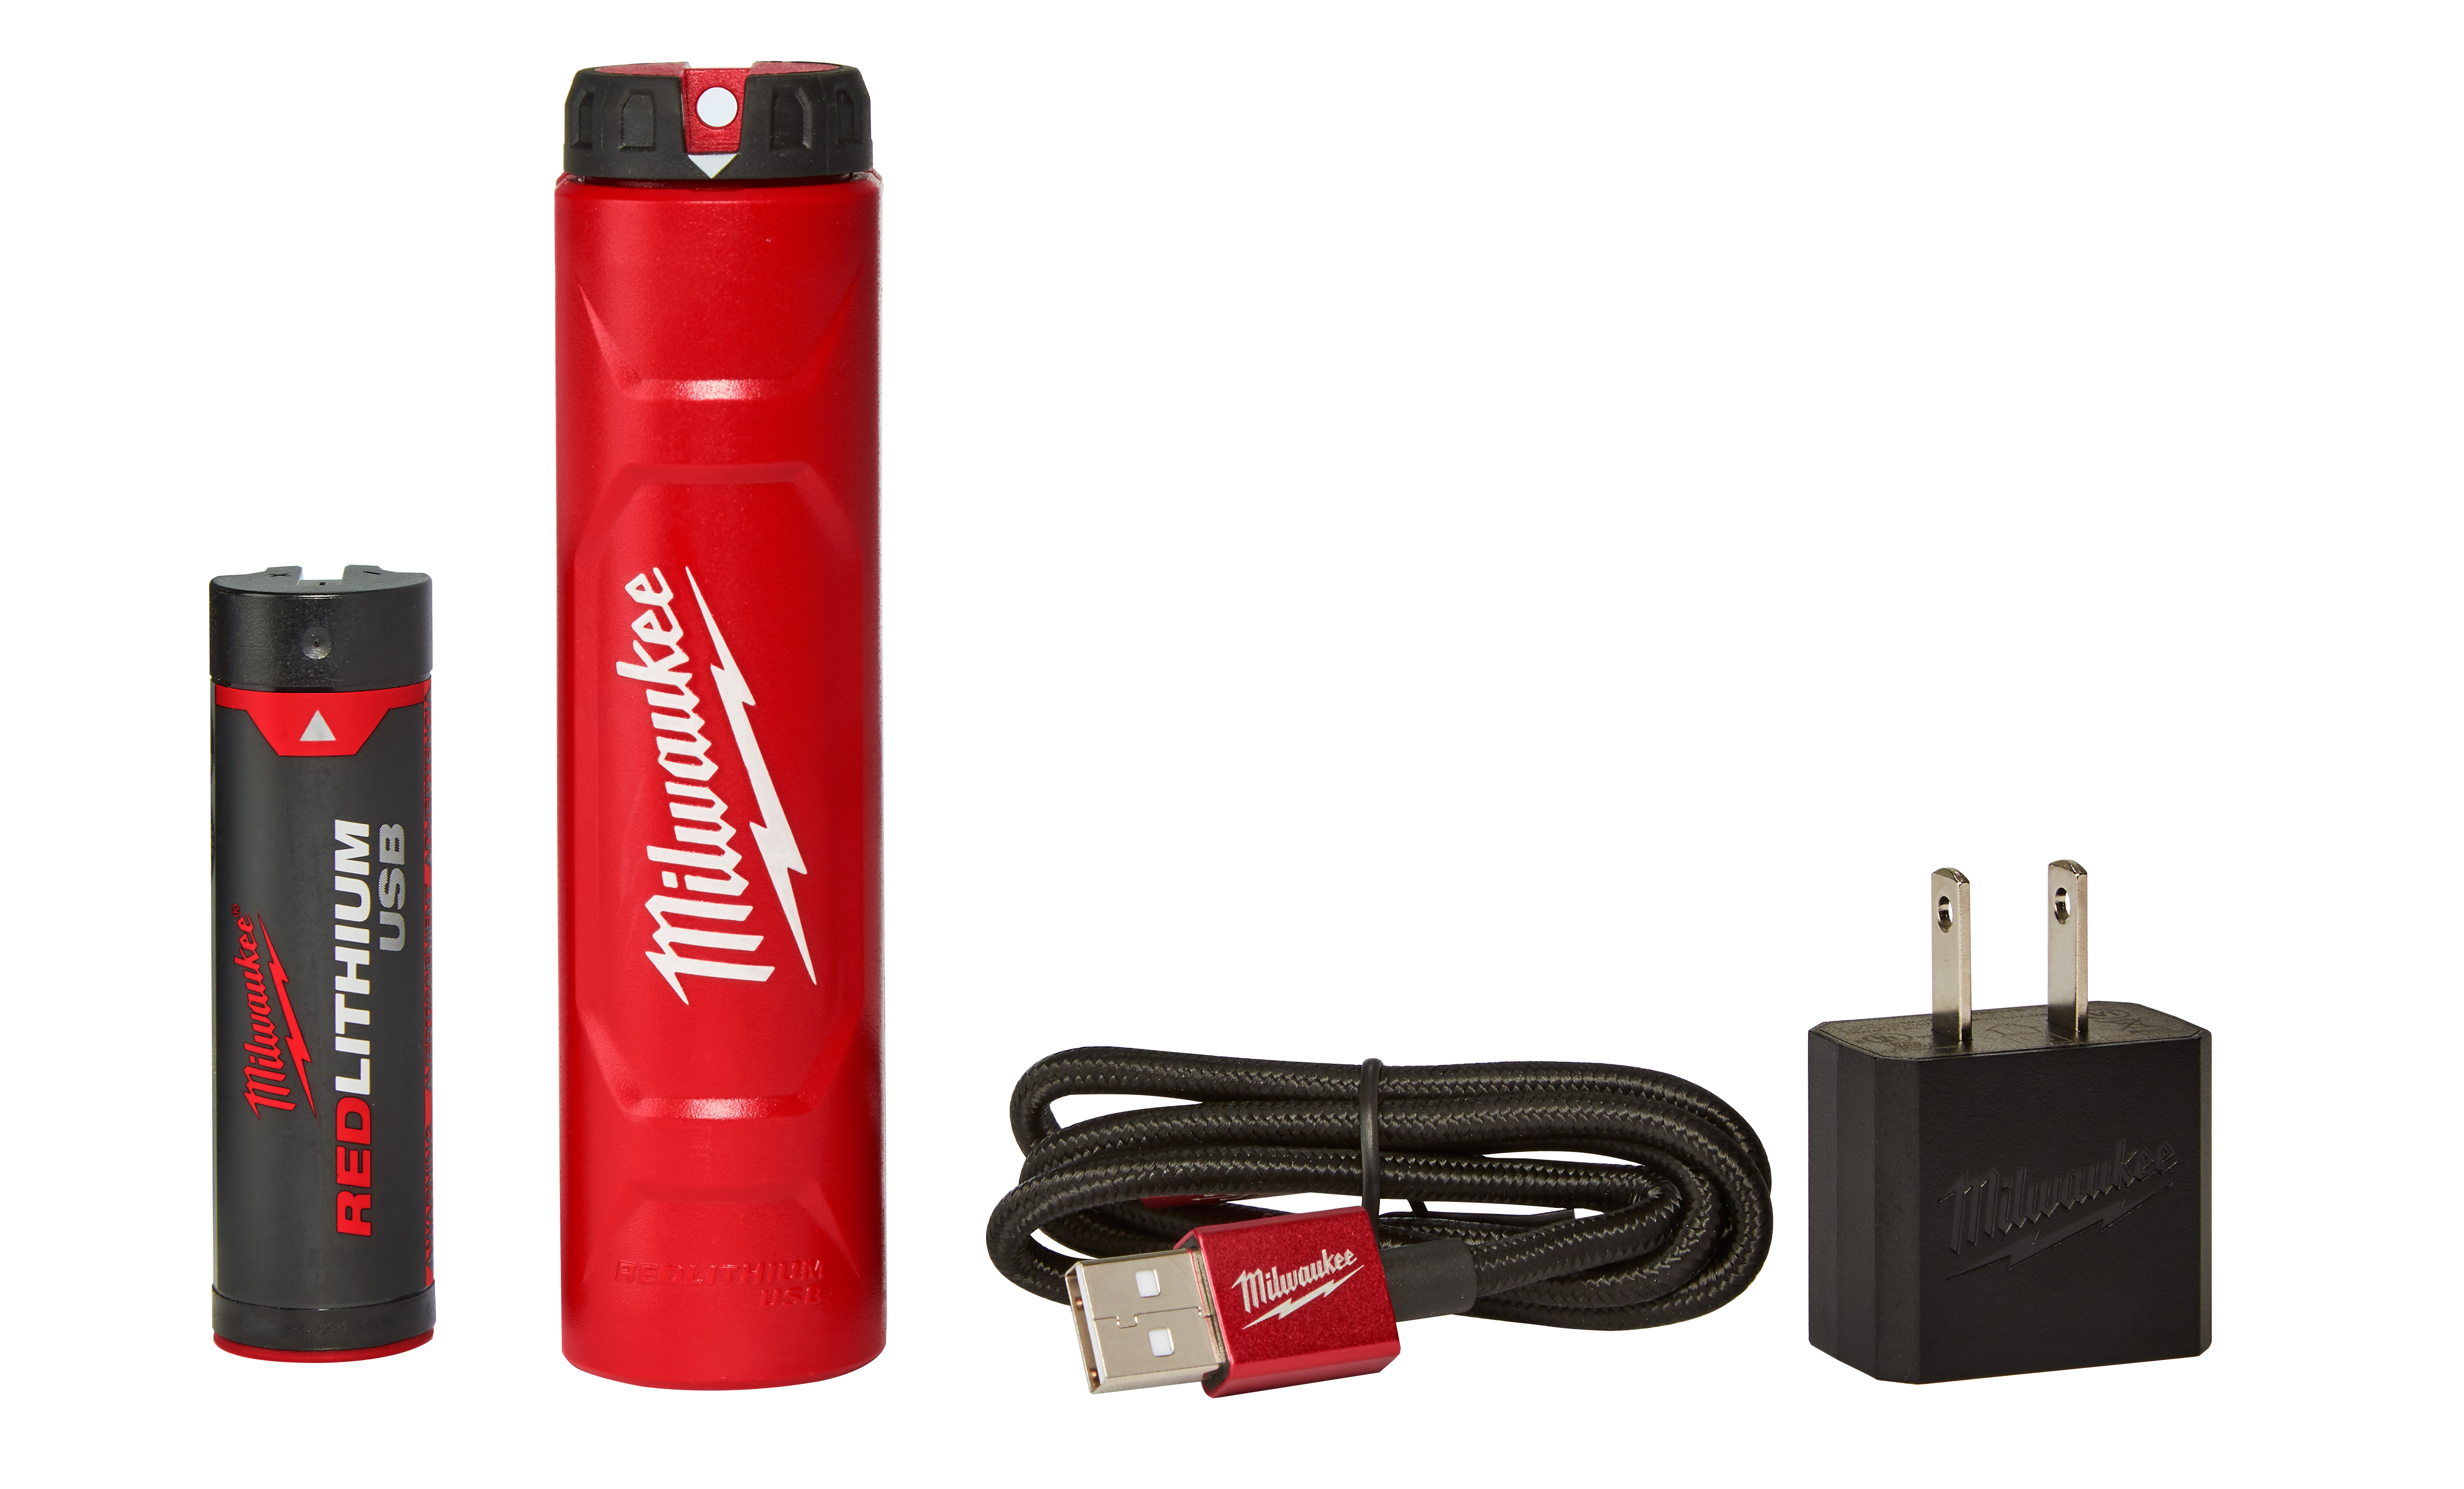 MIL 48-59-2003 REDLITHIUM USB BATTERY & CHARGER KIT